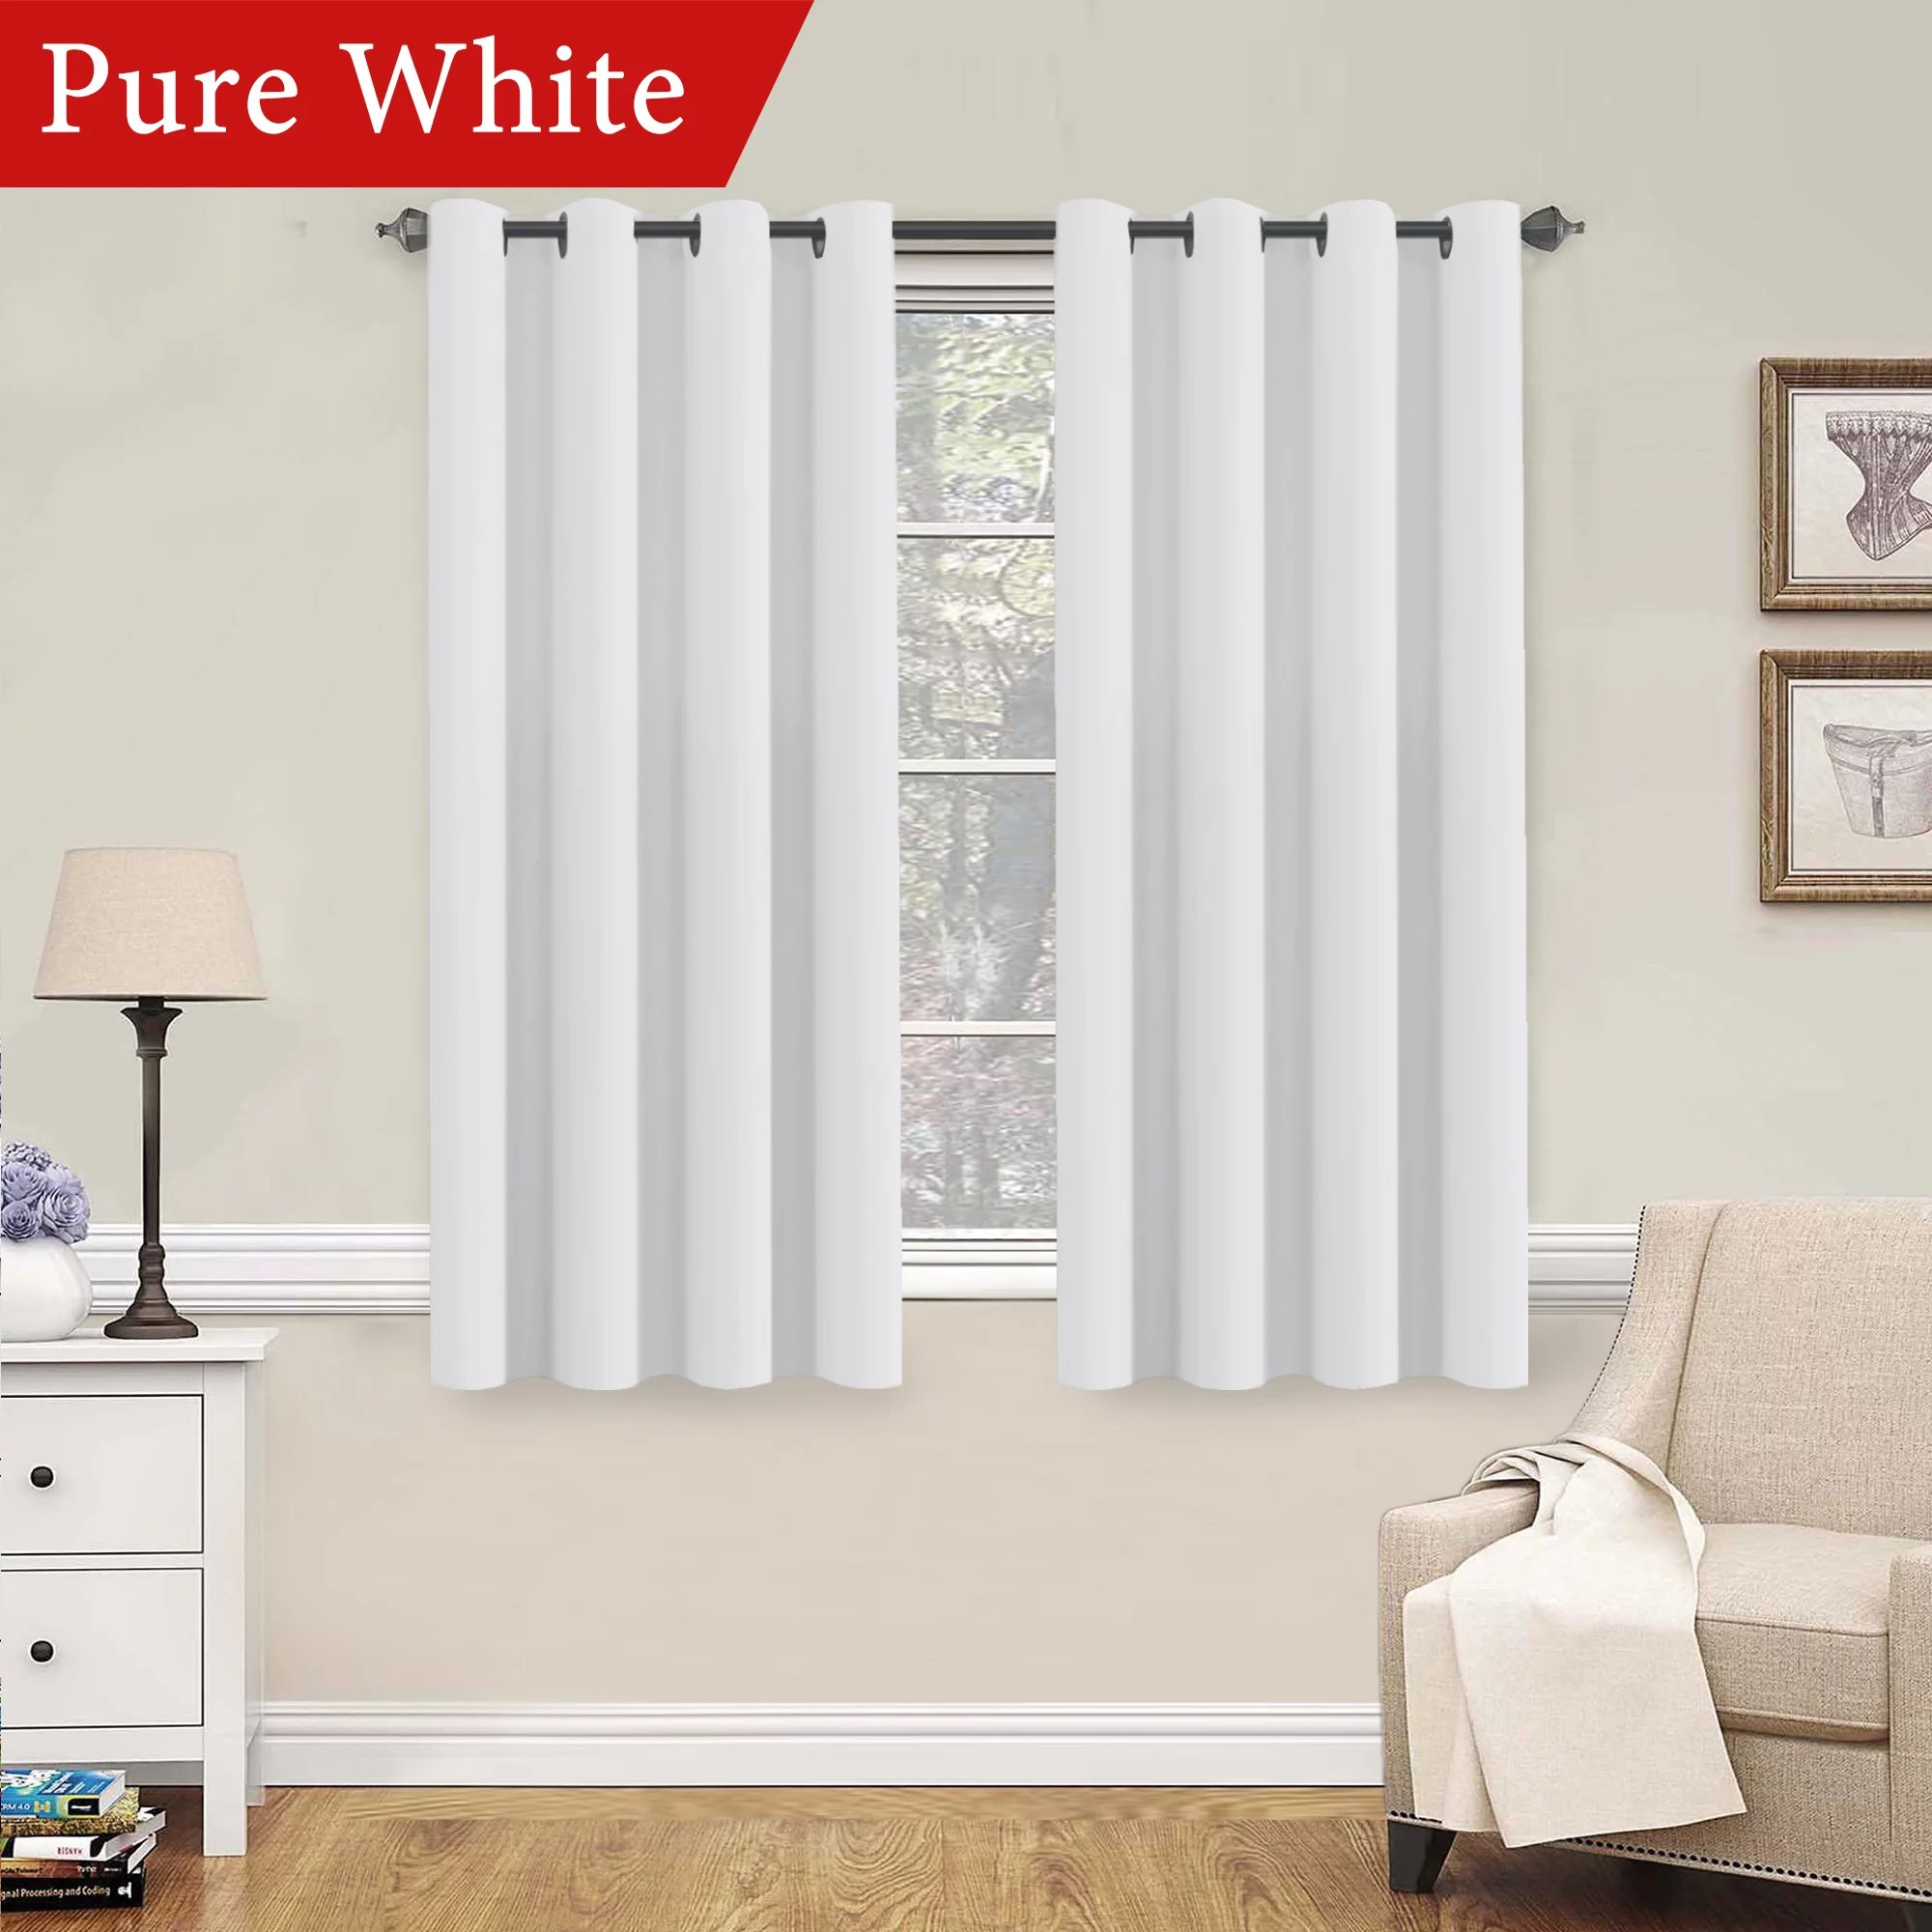 Bedroom Curtains Room Darkening H Versailtex Pure White Curtains 63 Inch Length Window